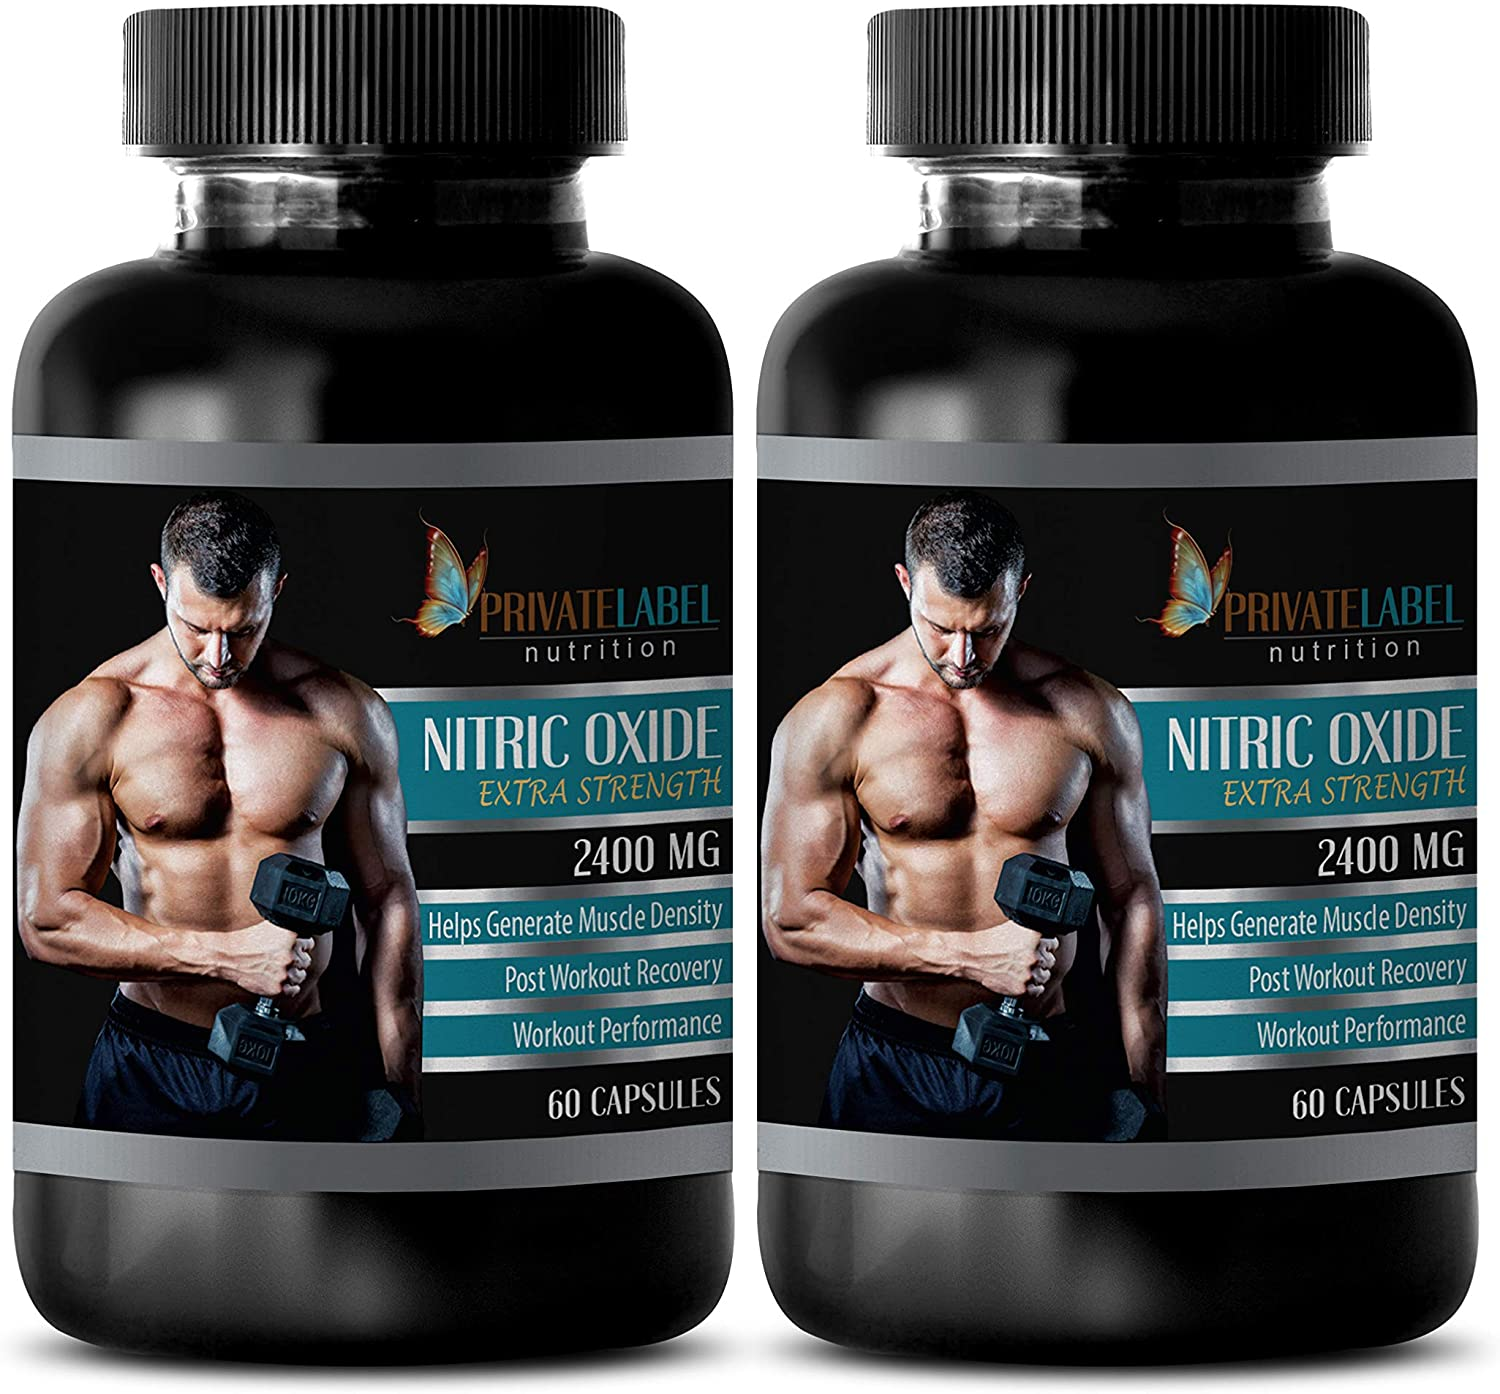 Increase Energy Levels - Nitric Oxide 2400 mg - Nitric Oxide Complex caps - 2 Bottles (120 Capsules)